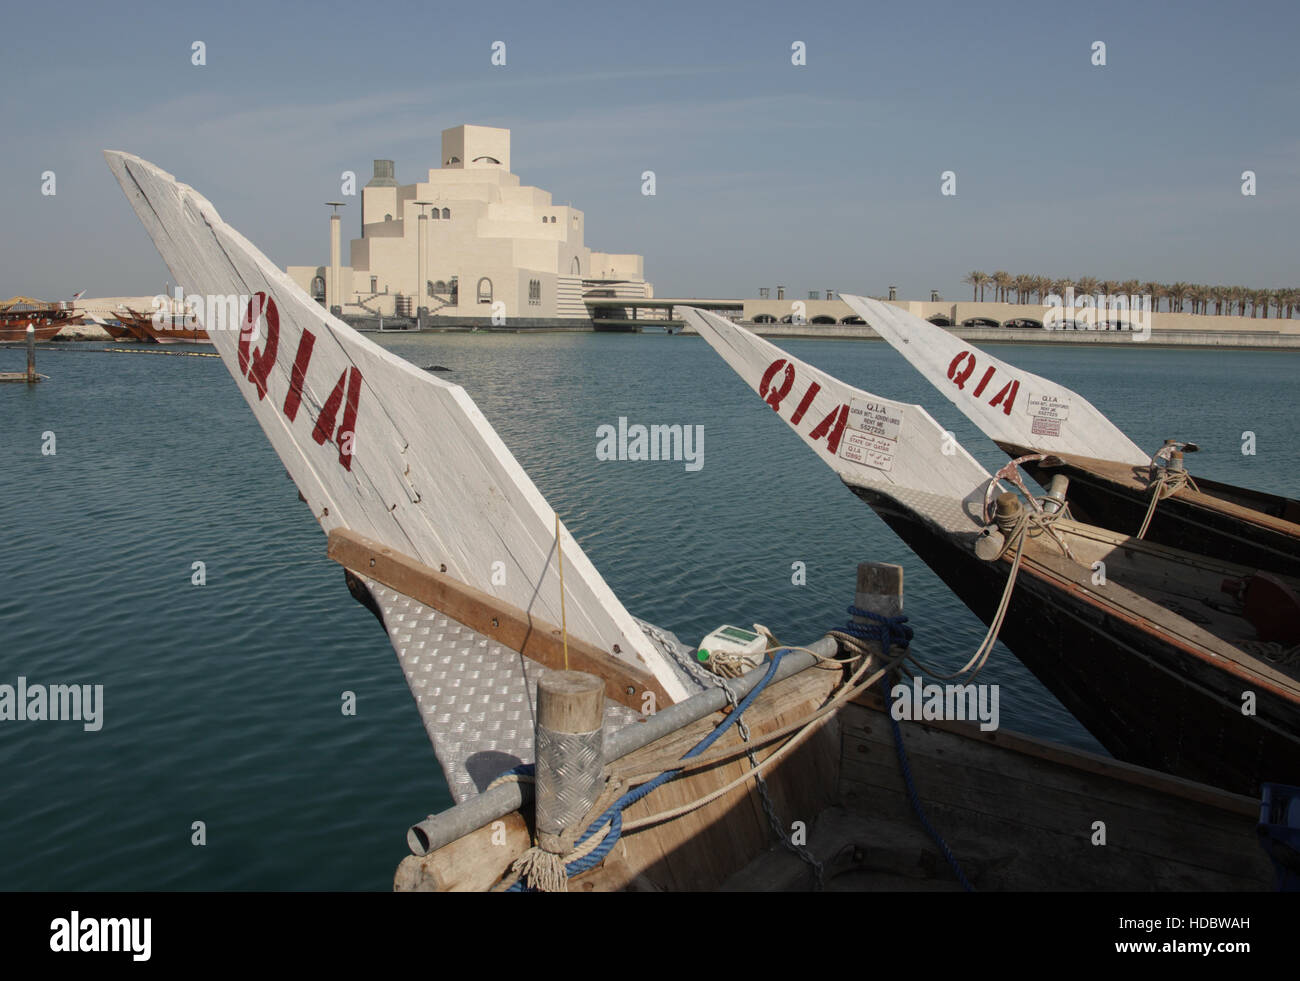 View from a Dhow, Dhow Harbour onto the museum for Islamic Art, architect I.M.Pei, Doha, Qatar, Middle East - Stock Image